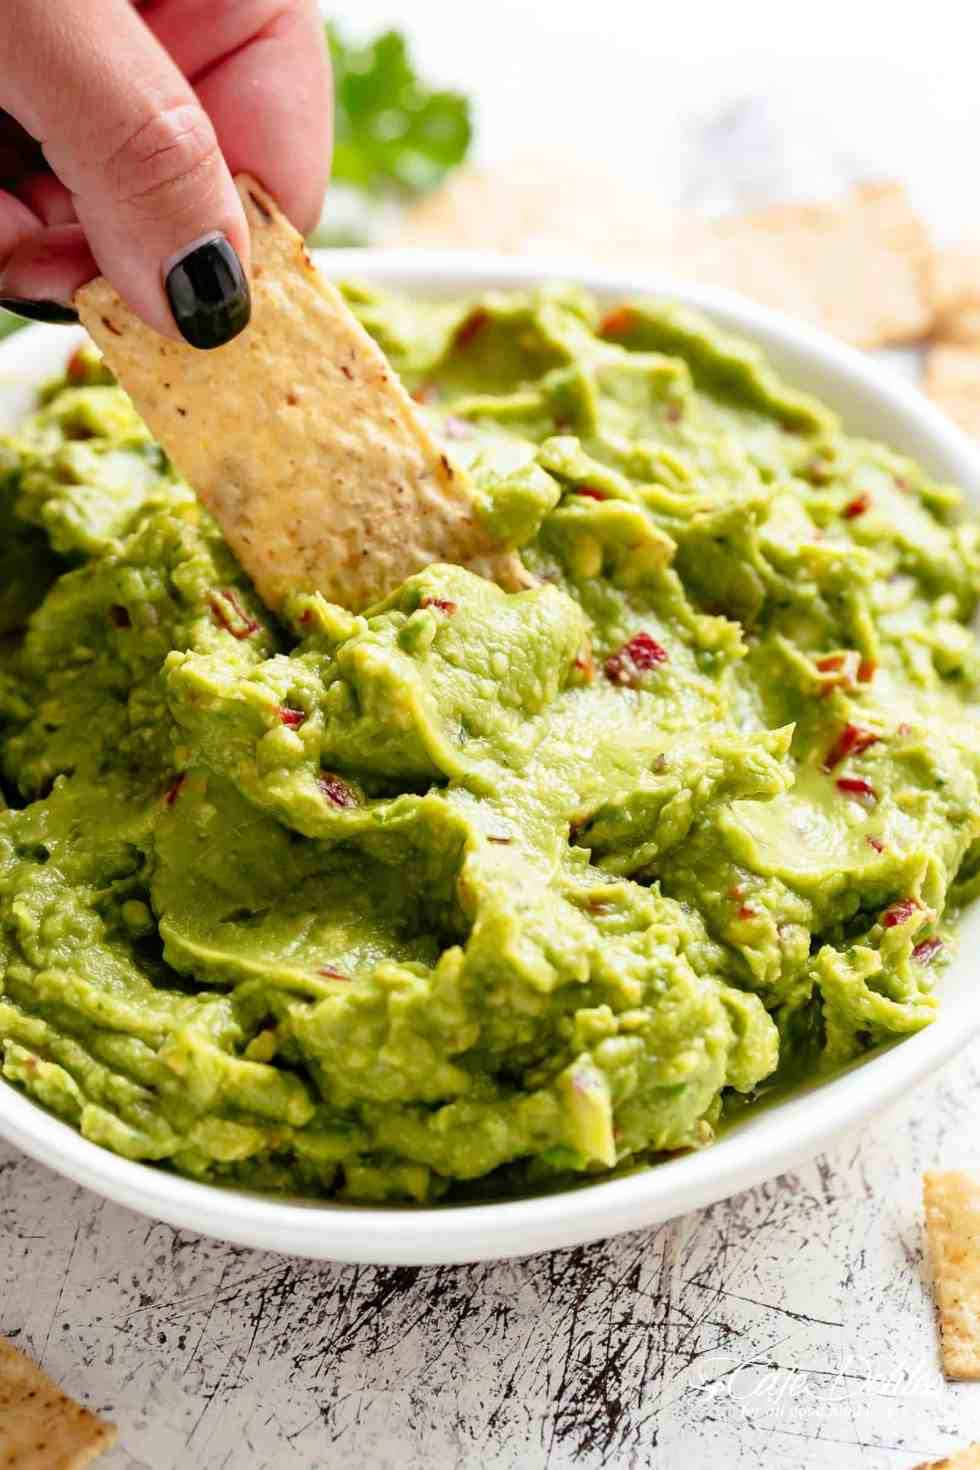 Homemade Guacamole for fajitas, tacos and carnitas! | cafedelites.com